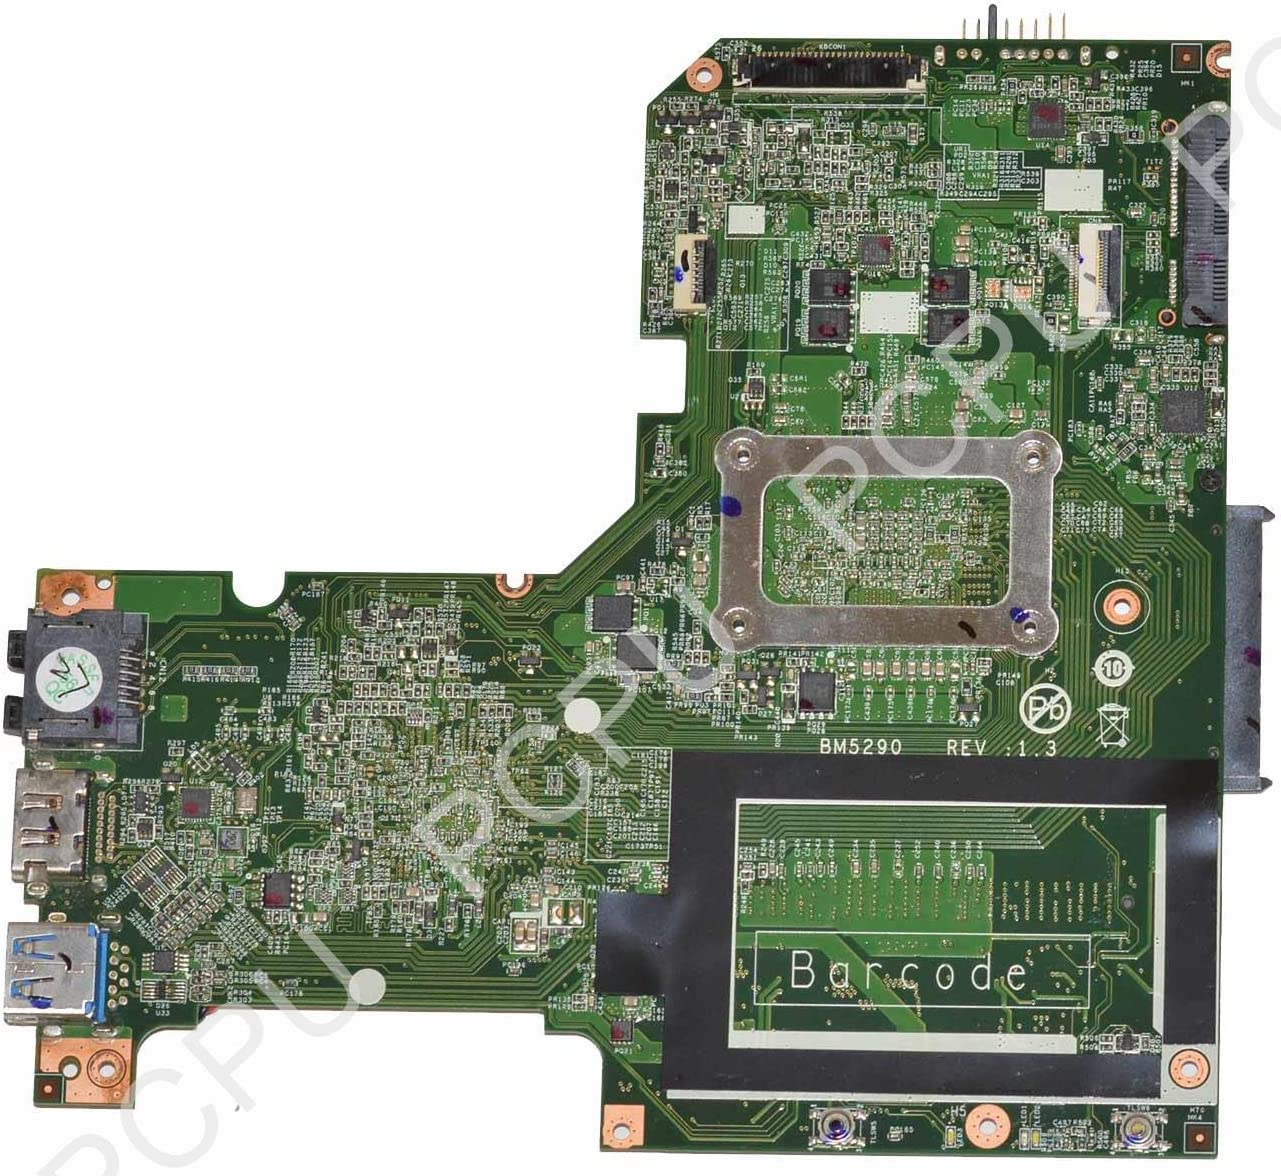 Lenovo IdeaPad S210 Touch Laptop Motherboard w// Pentium Dual Core CPU 90003169